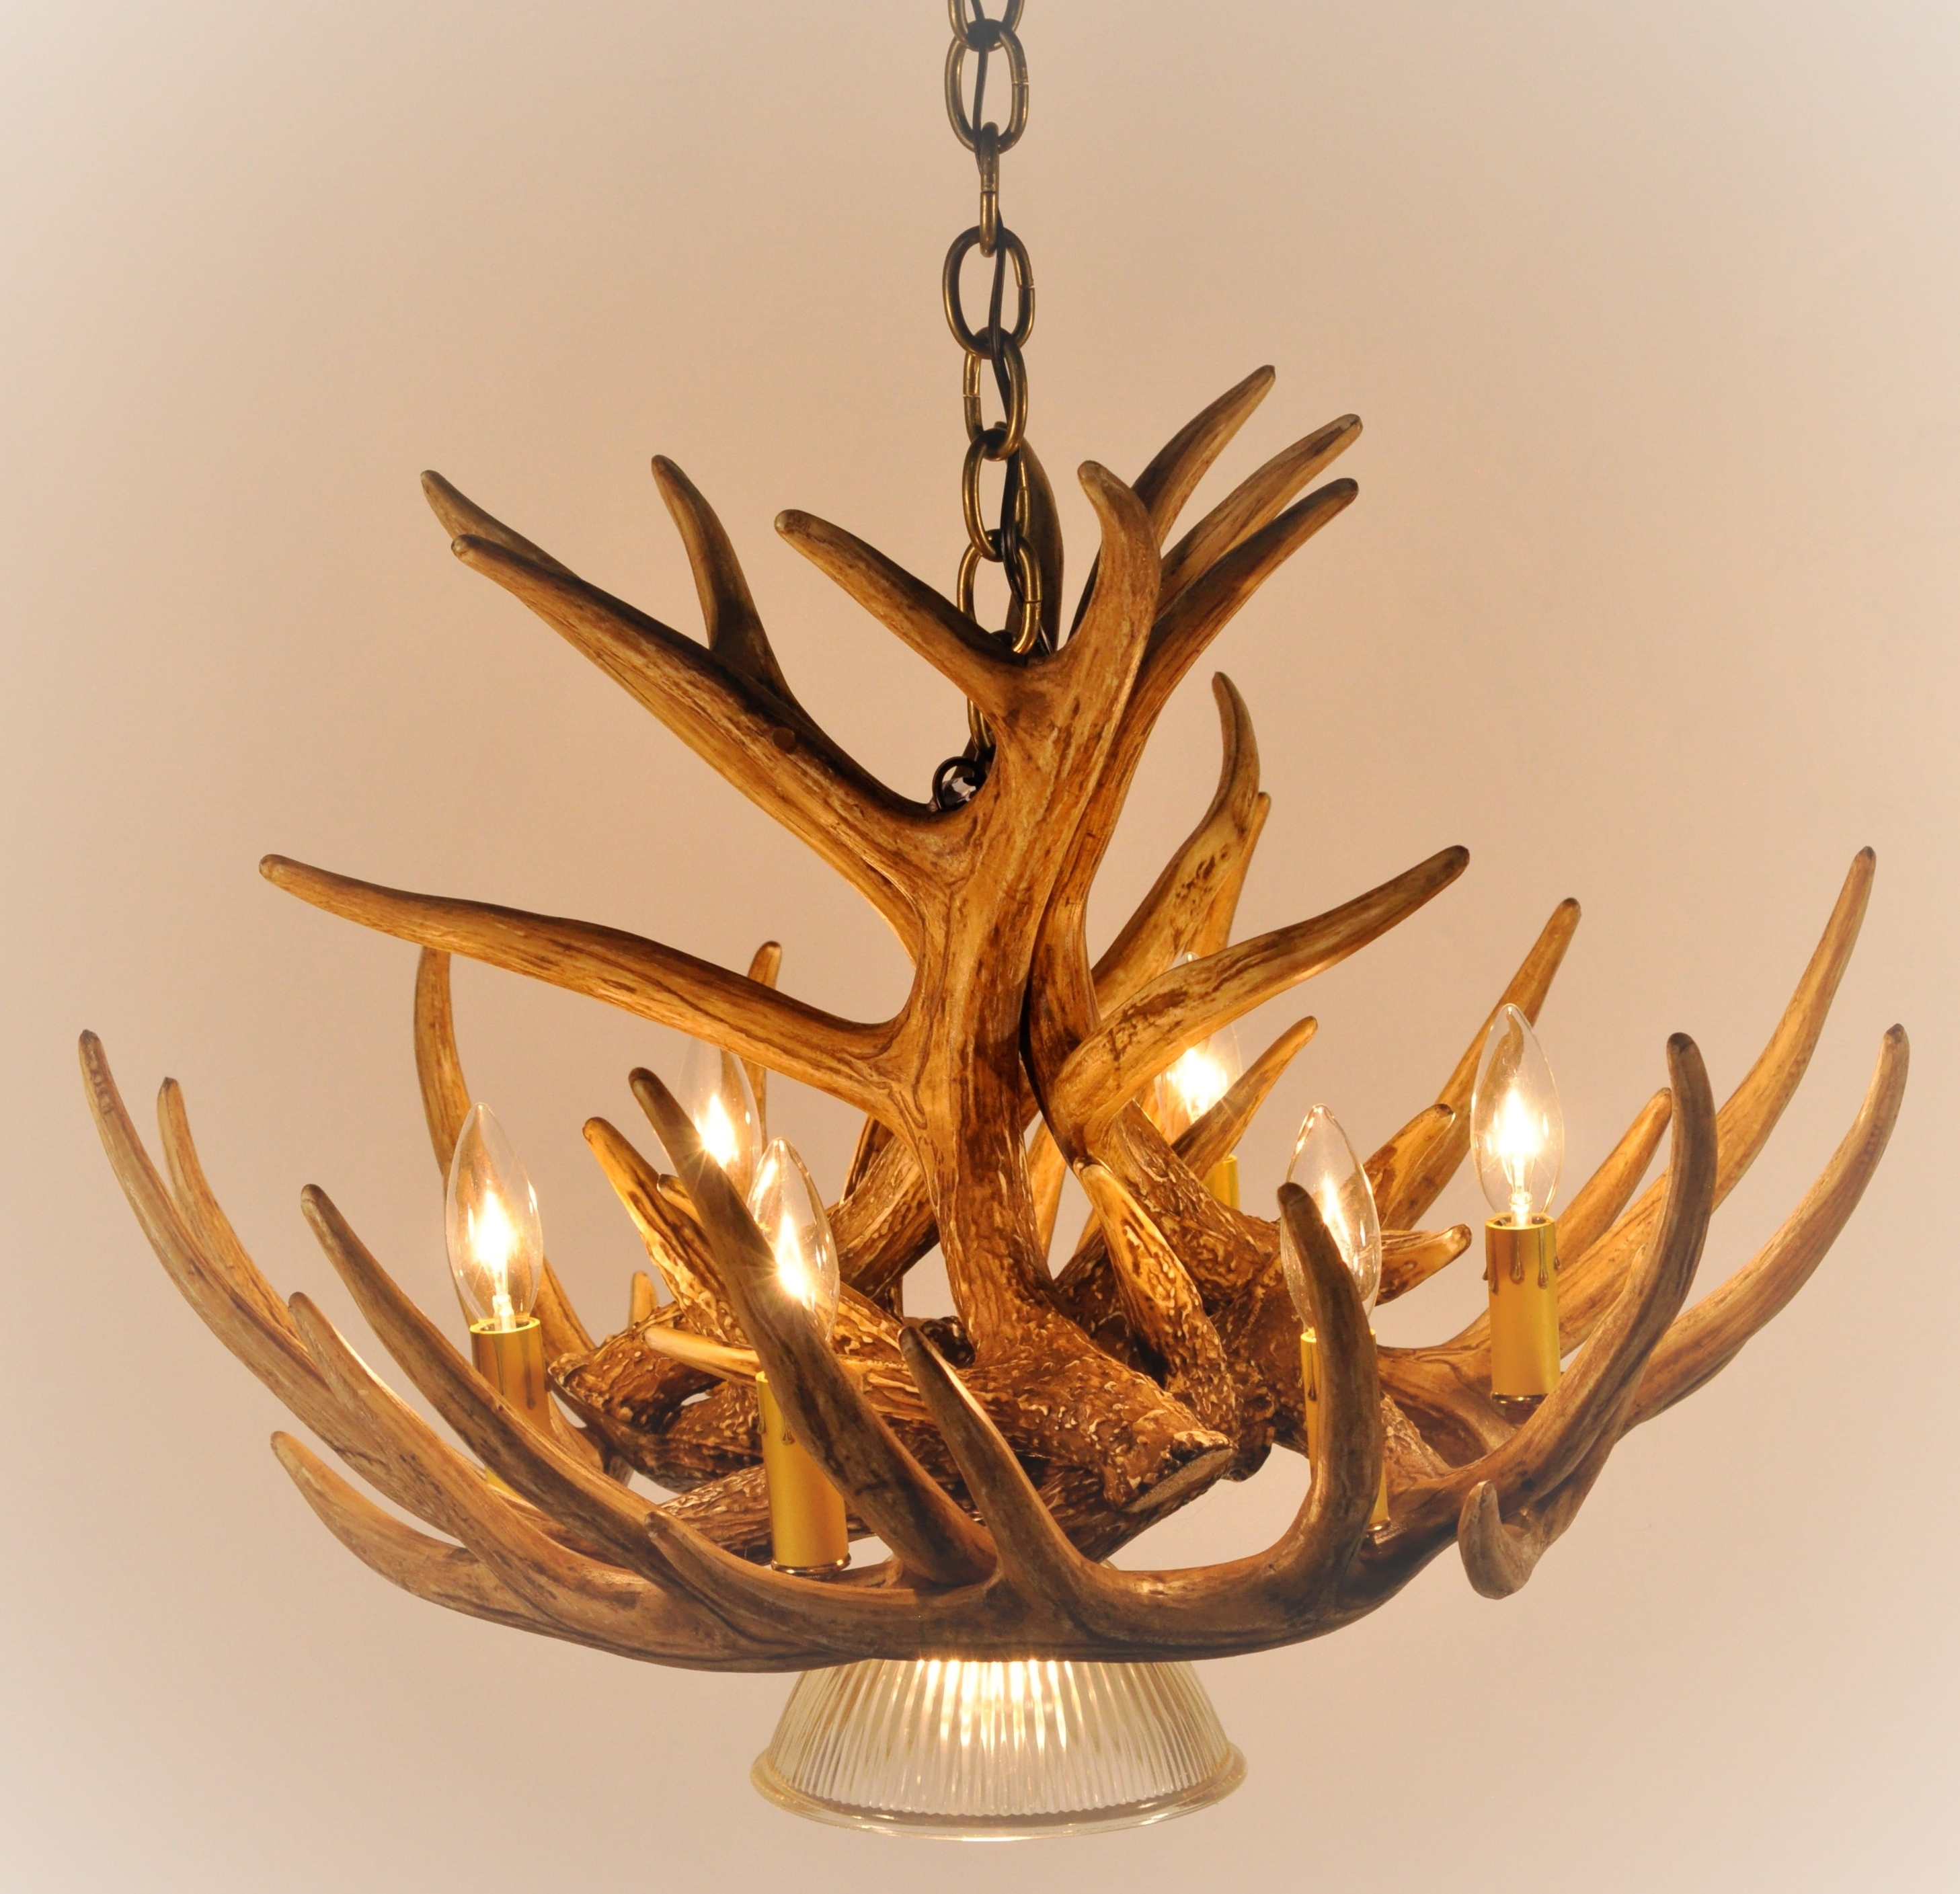 Whitetail Deer 9 Antler Cascade Chandelier With 1 Downlight* – Cast Pertaining To Newest Antlers Chandeliers (View 20 of 20)